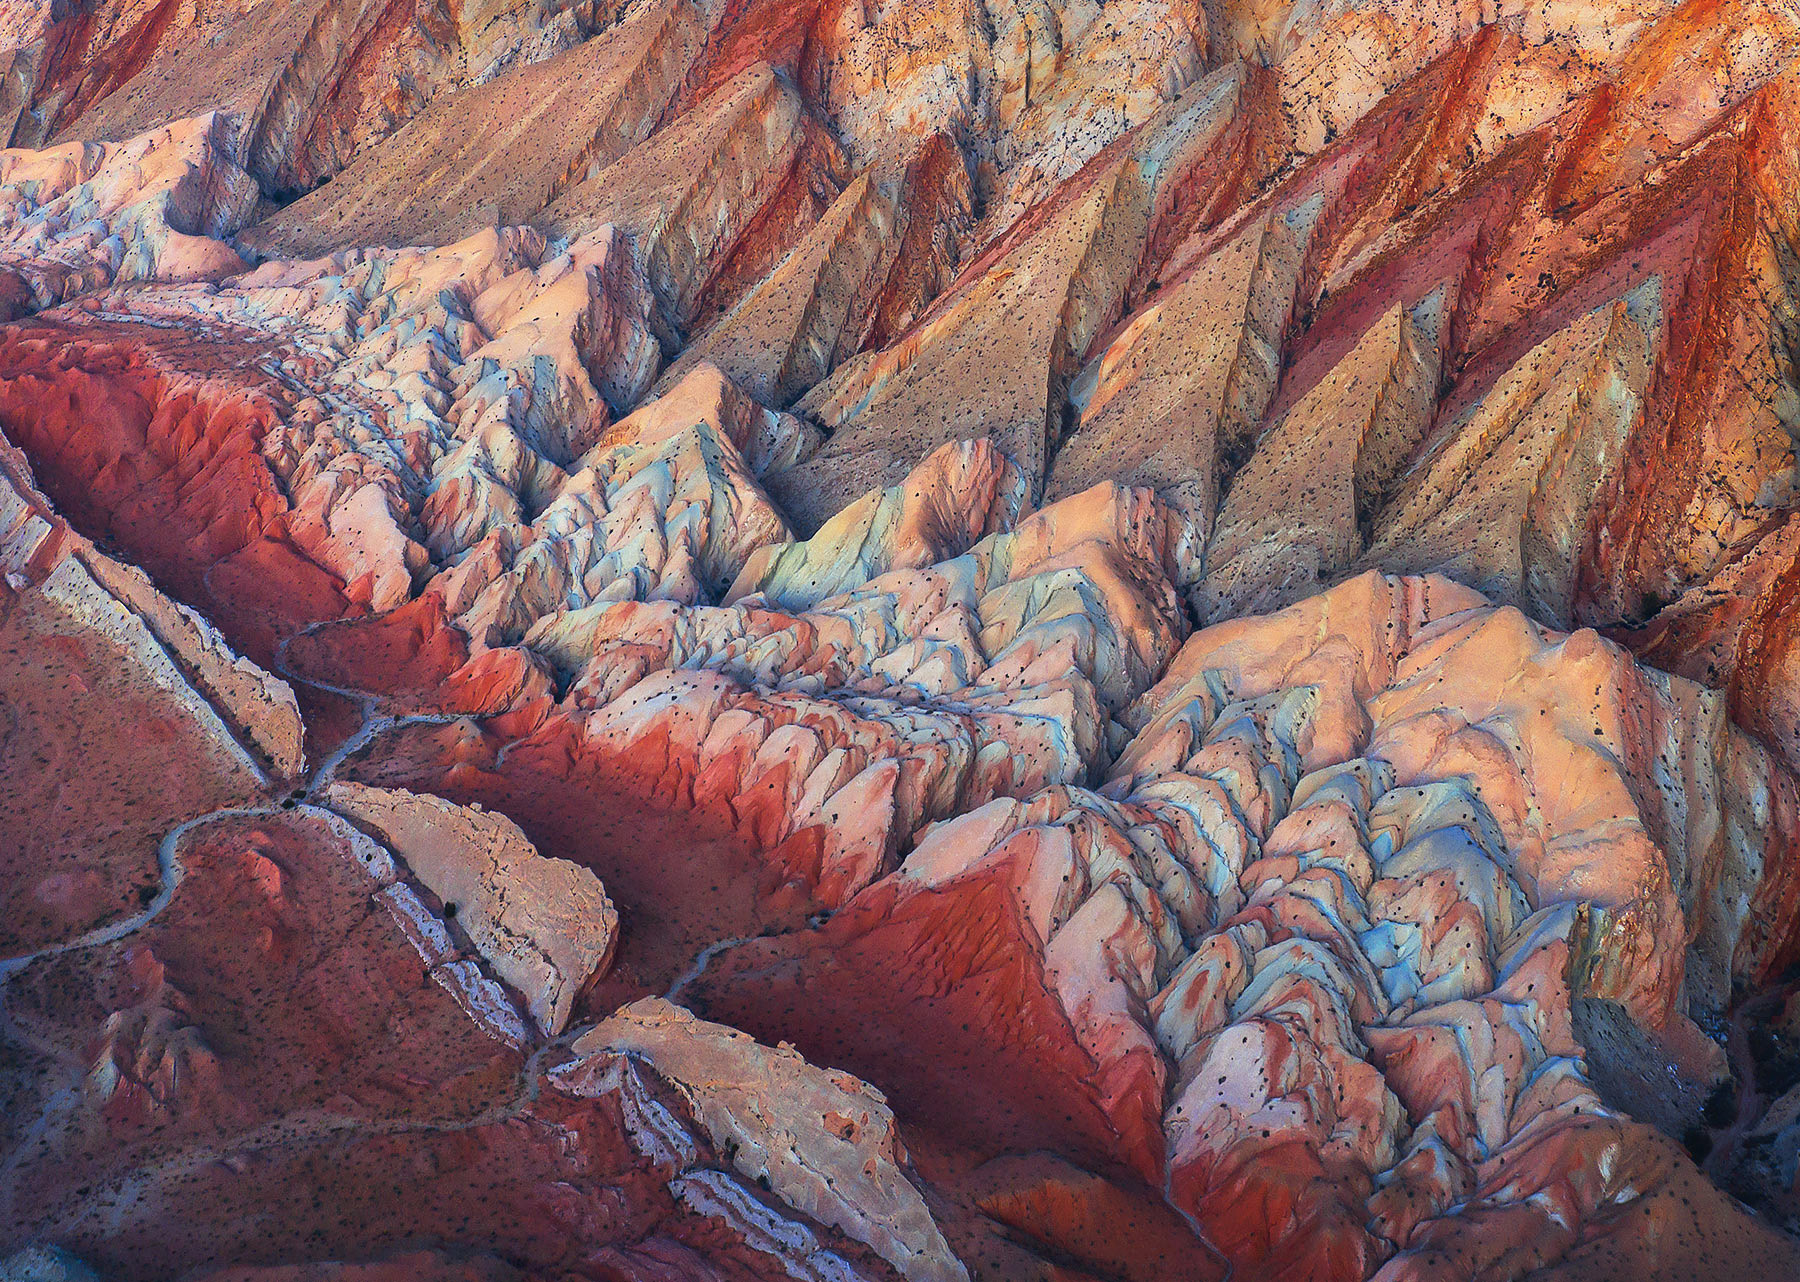 Layers of sandstone from the air.  The amazing swells of Utah are an unforgettable geological showcase.